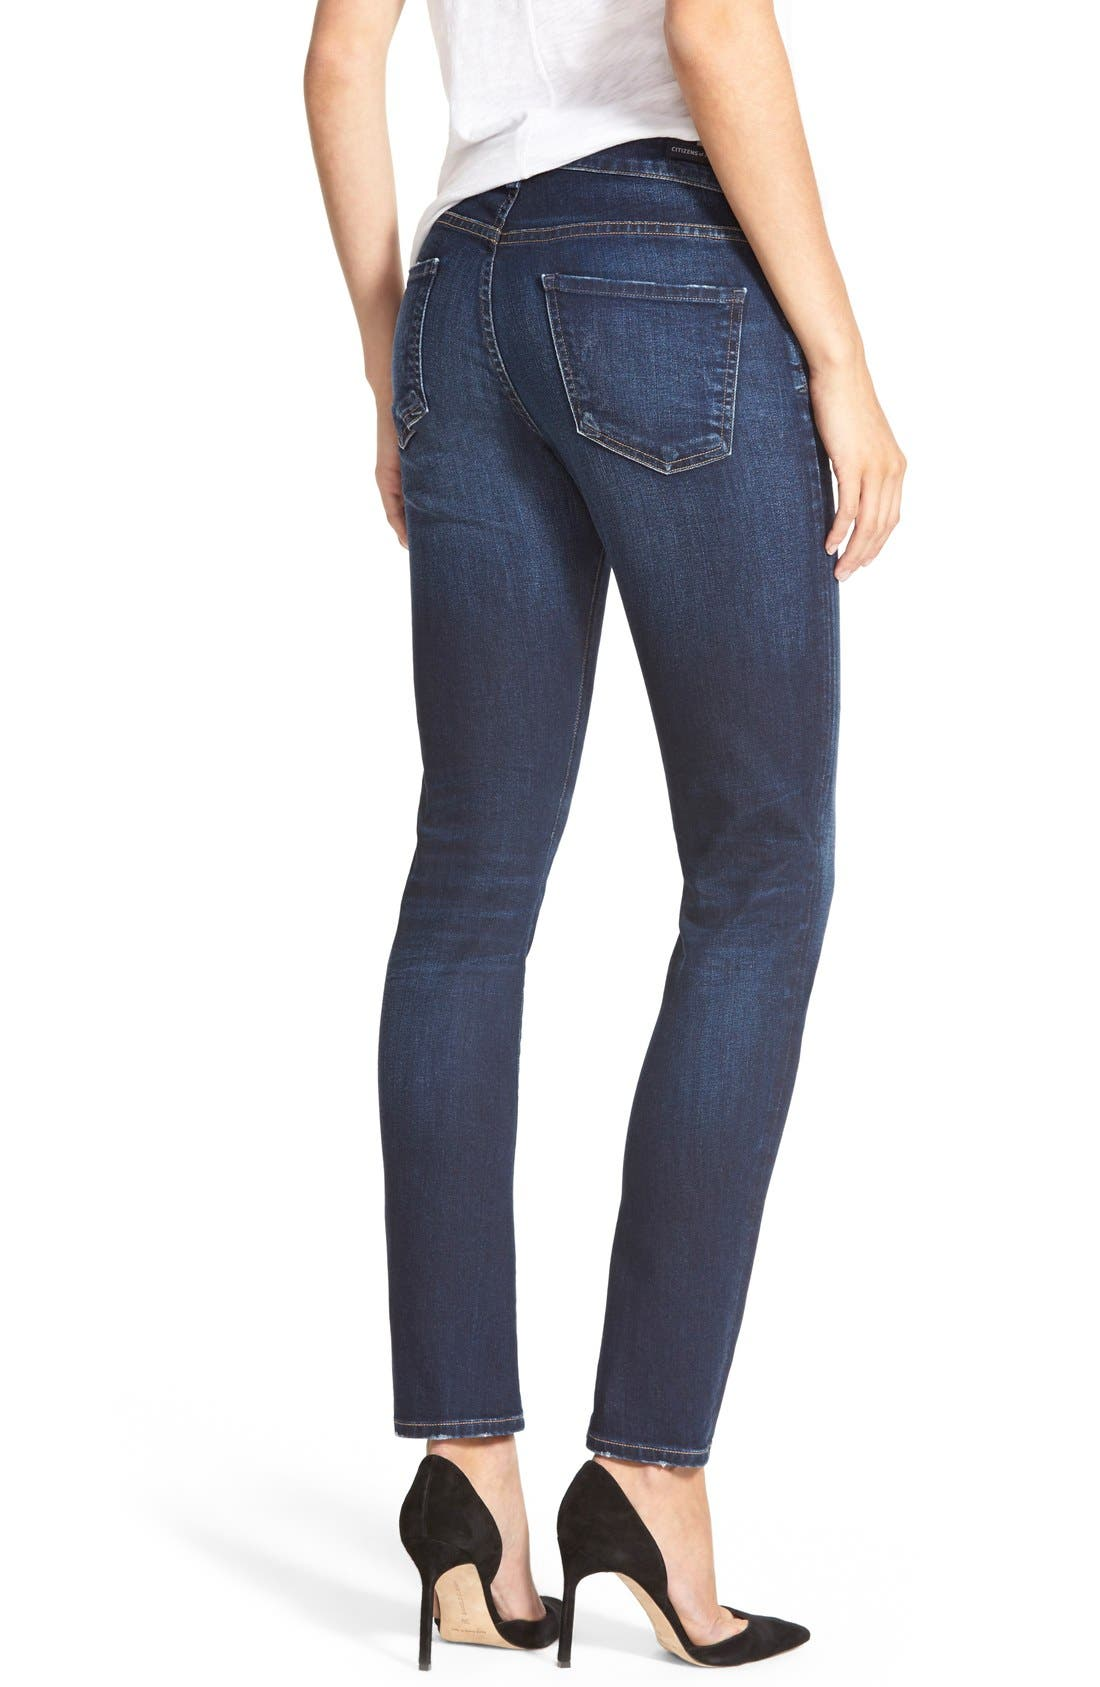 'Arielle' Mid Rise Slim Jeans,                             Alternate thumbnail 5, color,                             463